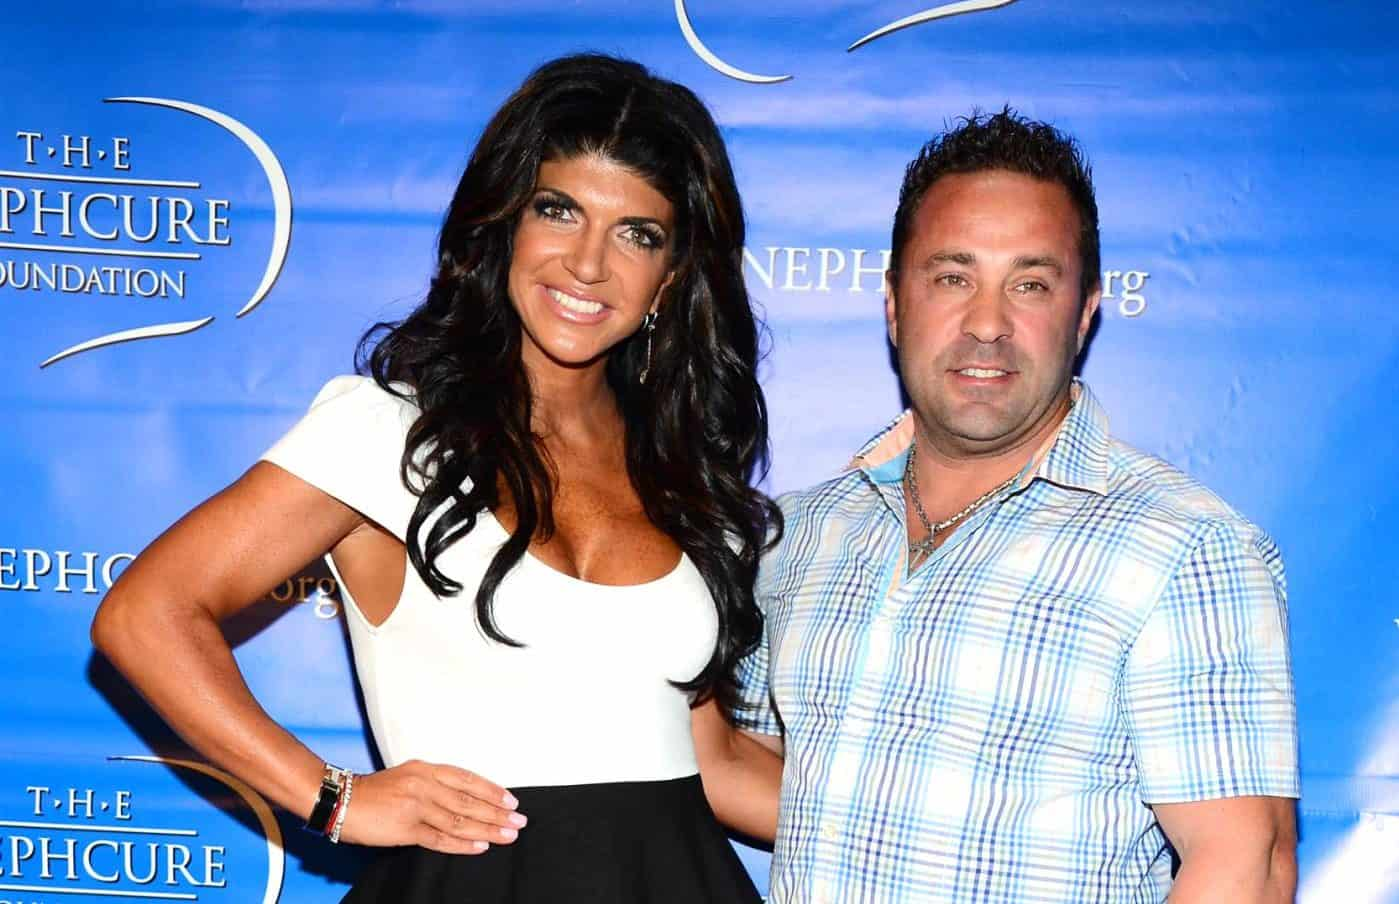 RHONJ's Teresa Giudice Admits to Harboring Ill Feelings Towards Joe